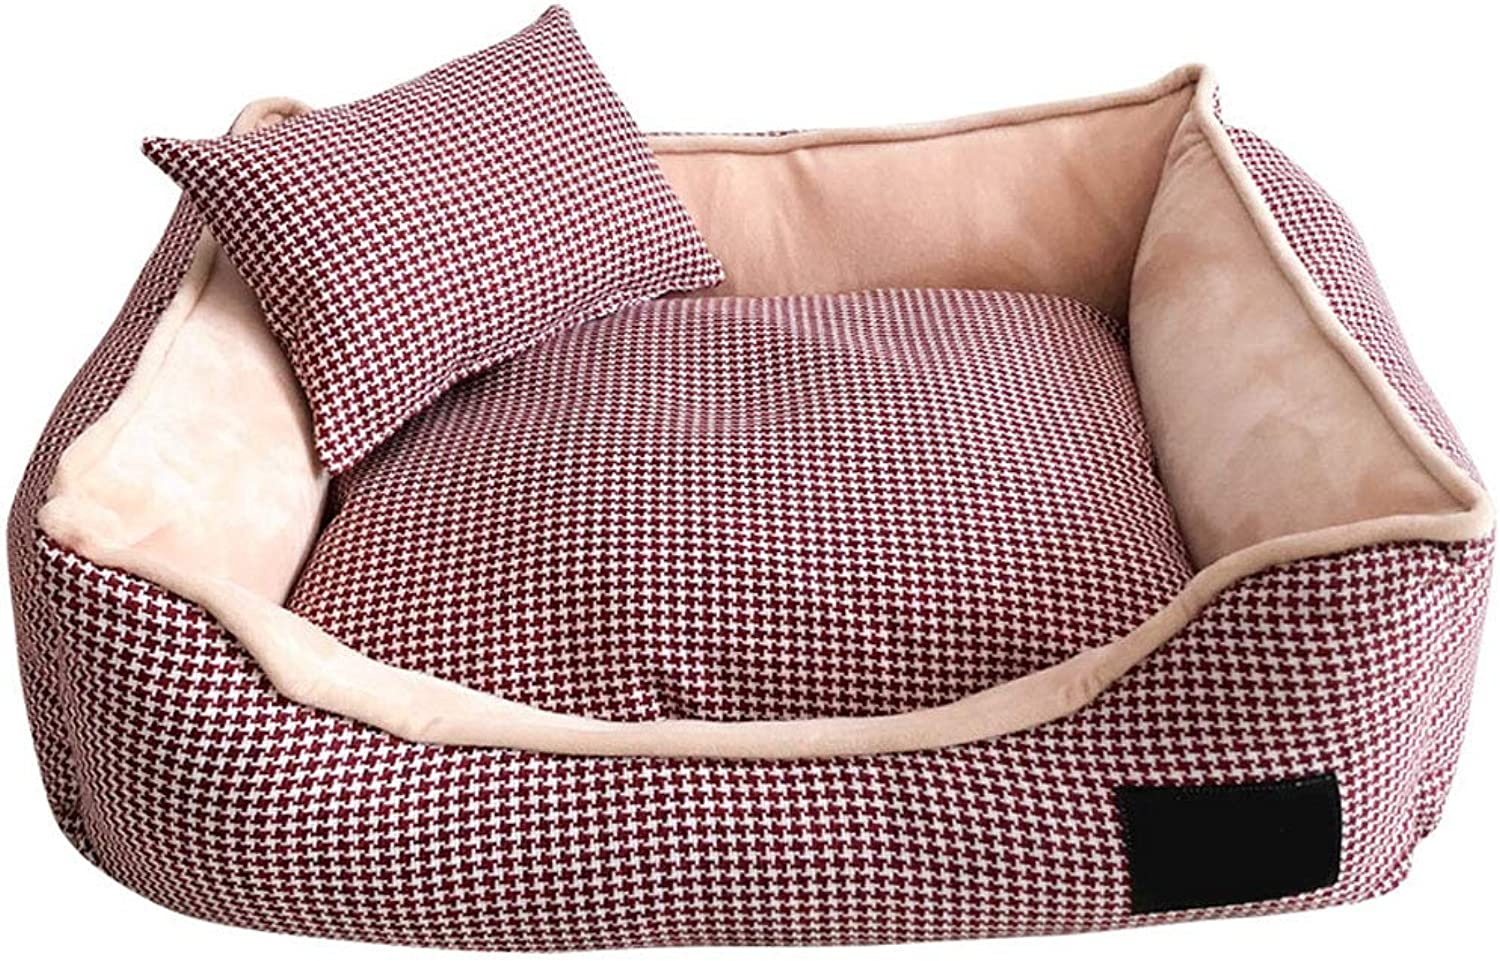 Il Bed of Dog, completamente smontabile e lavabile, impermeabile a umido Pet Pad Twosided use Dog Bed Large Dog kennel (100 * 80 * 26cm),viola, M